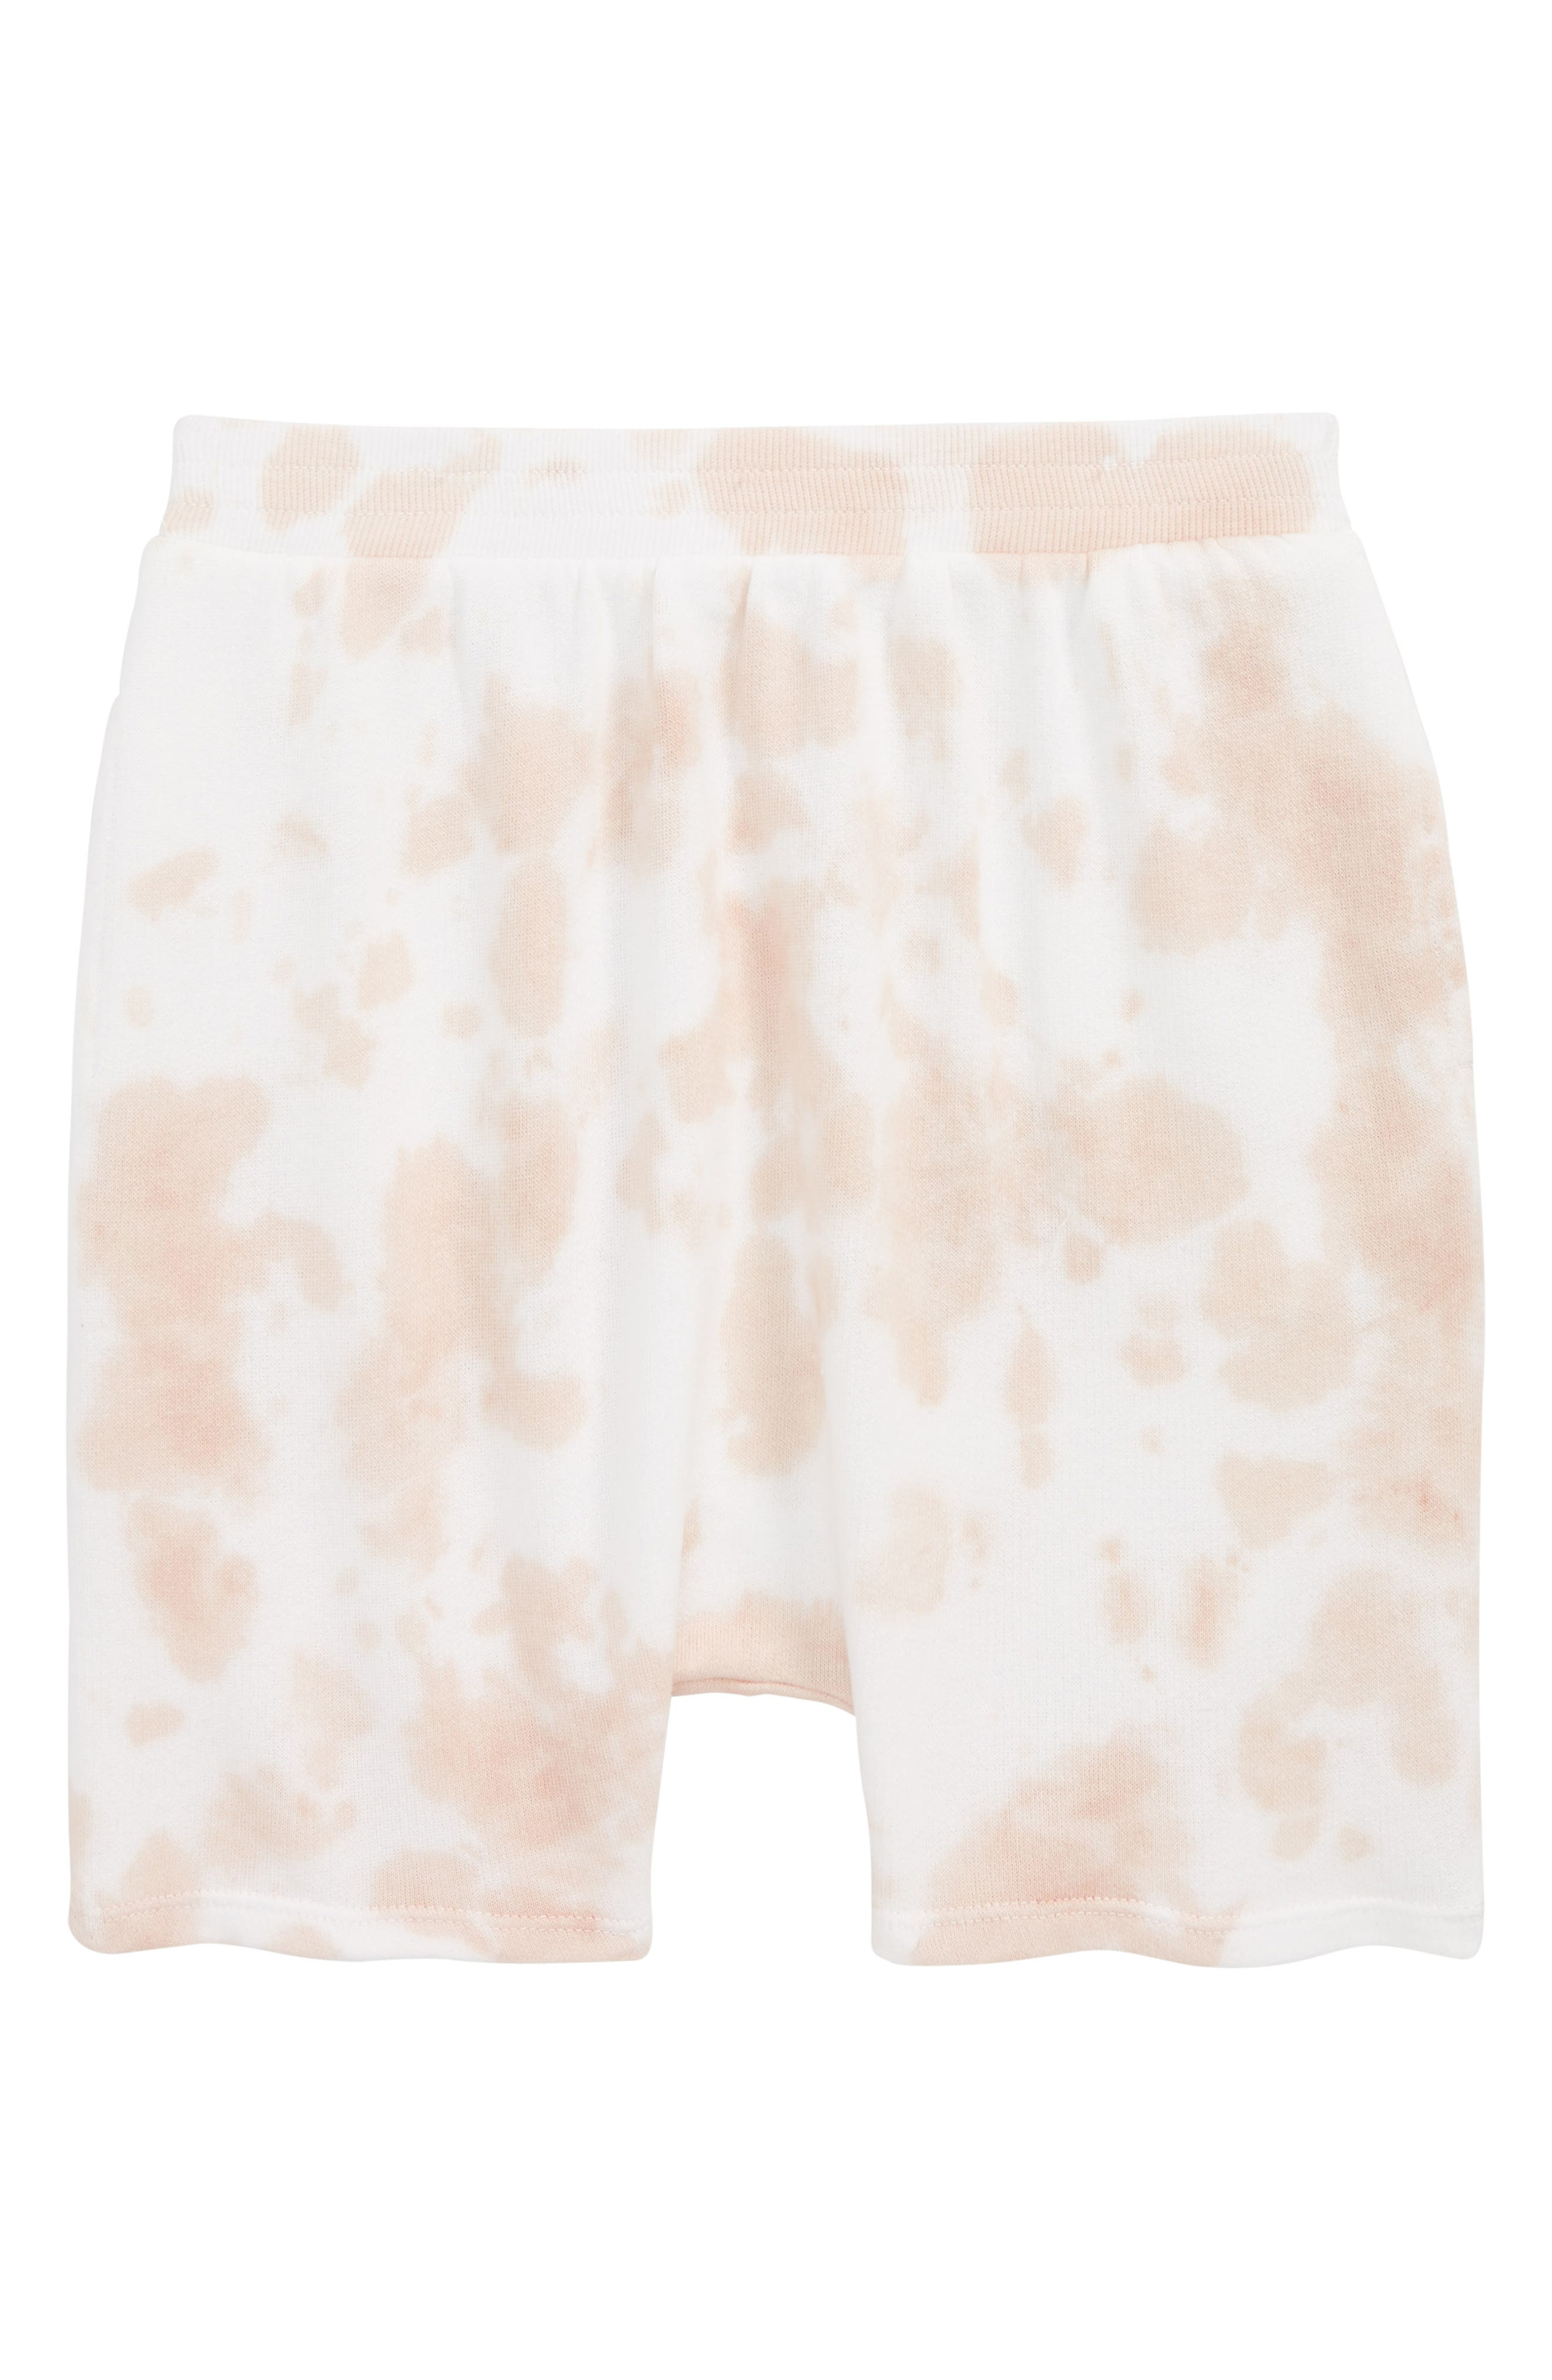 Tie Dye Shorts,                             Main thumbnail 1, color,                             680